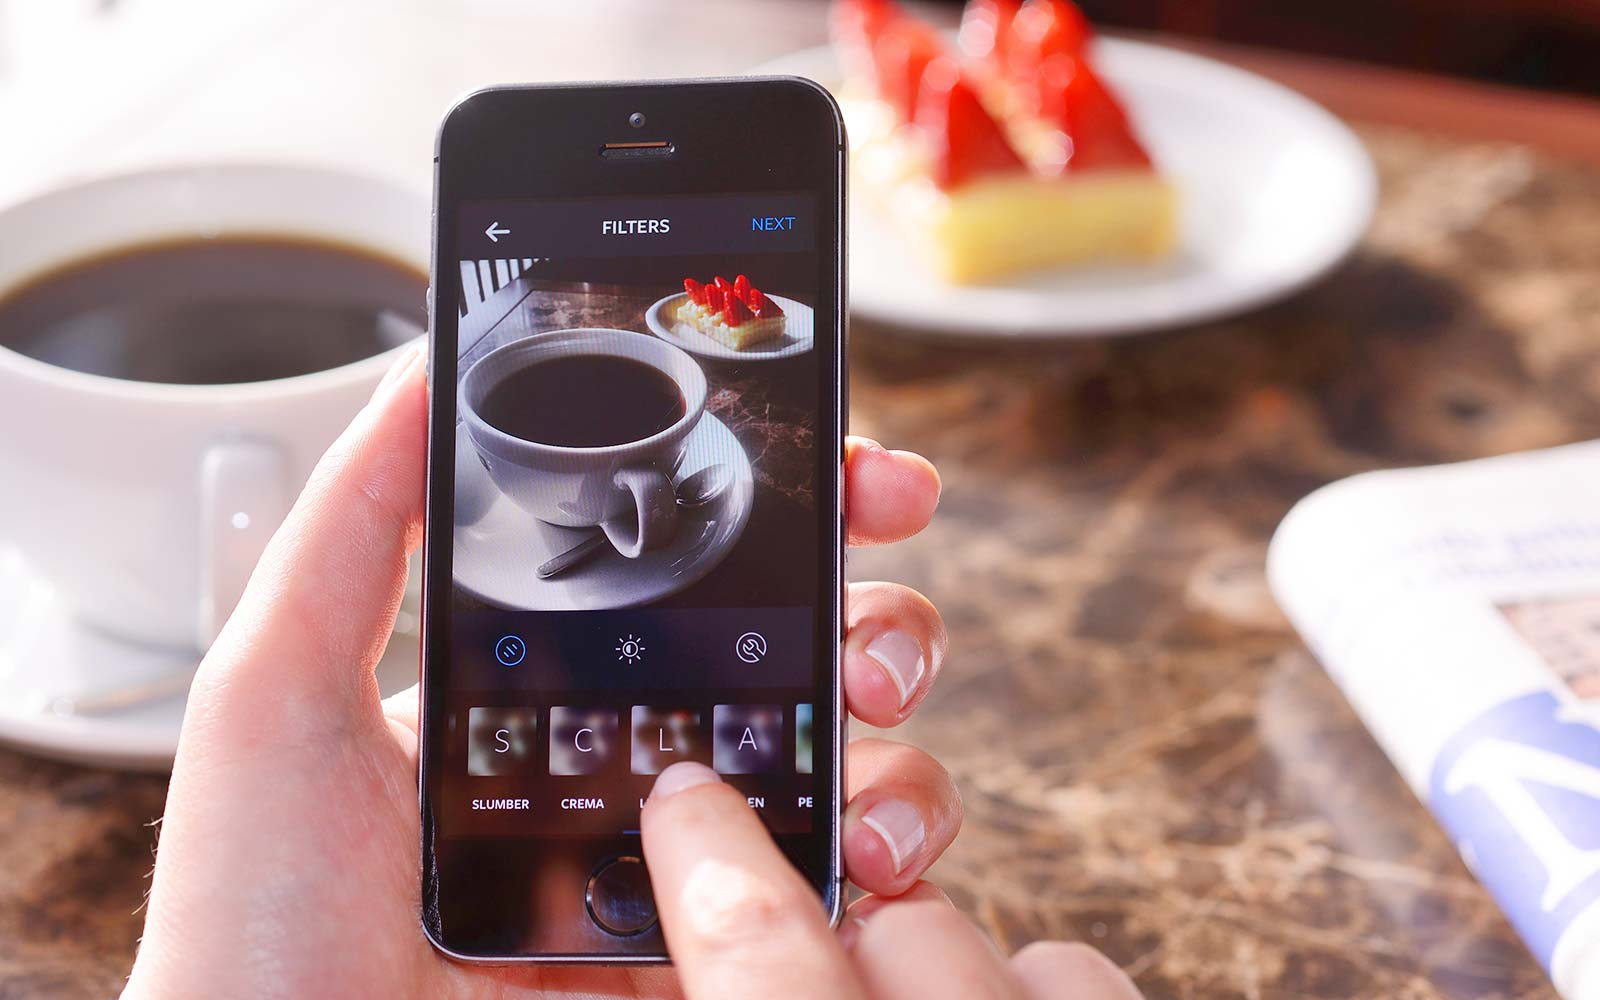 5 Instagram Tips and Tricks You Might Not Know